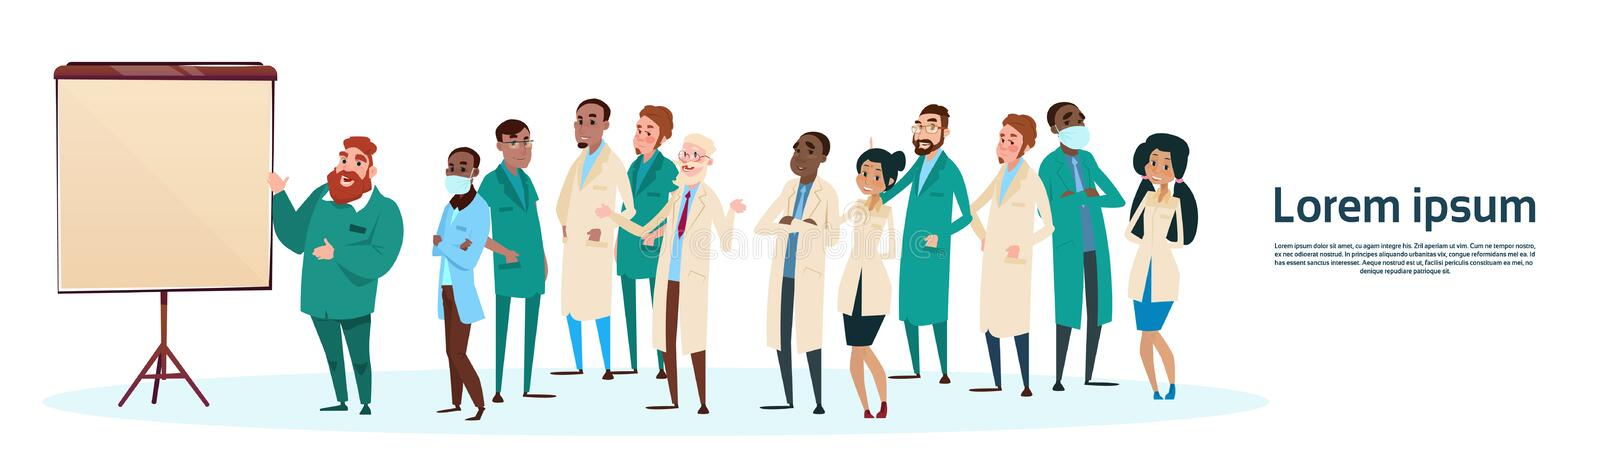 Mix Race Medical Doctors Group Team People Intern Lecture Study vector illustration